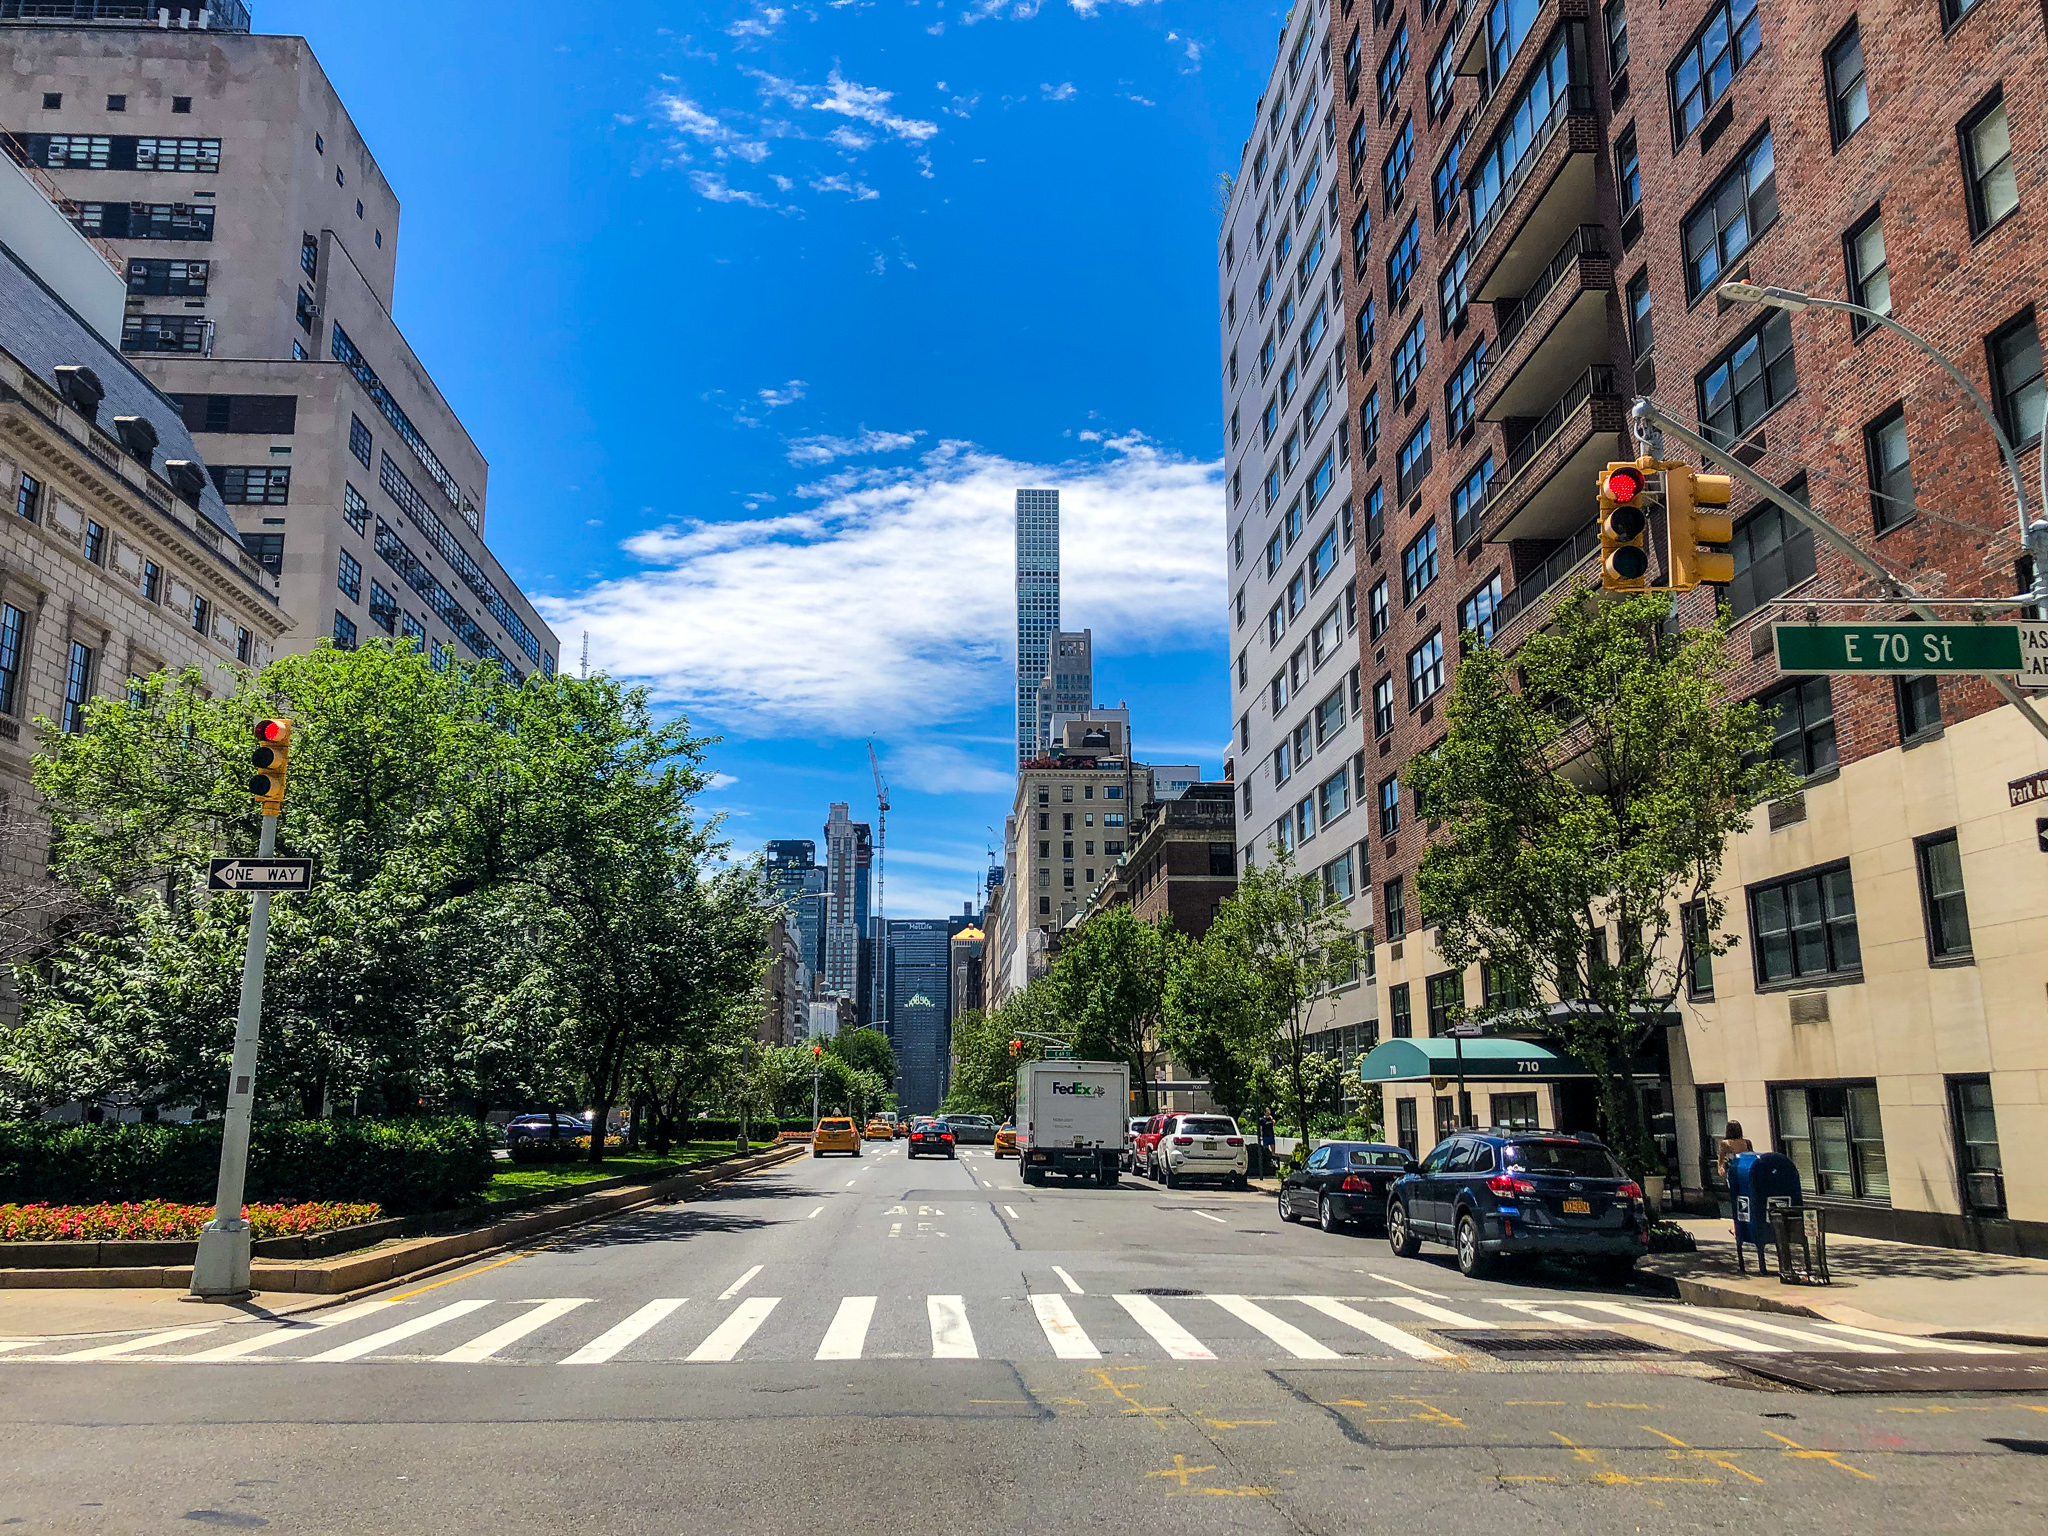 2 days in new york itinerary tip: walk as much as possible in 1 neighborhood